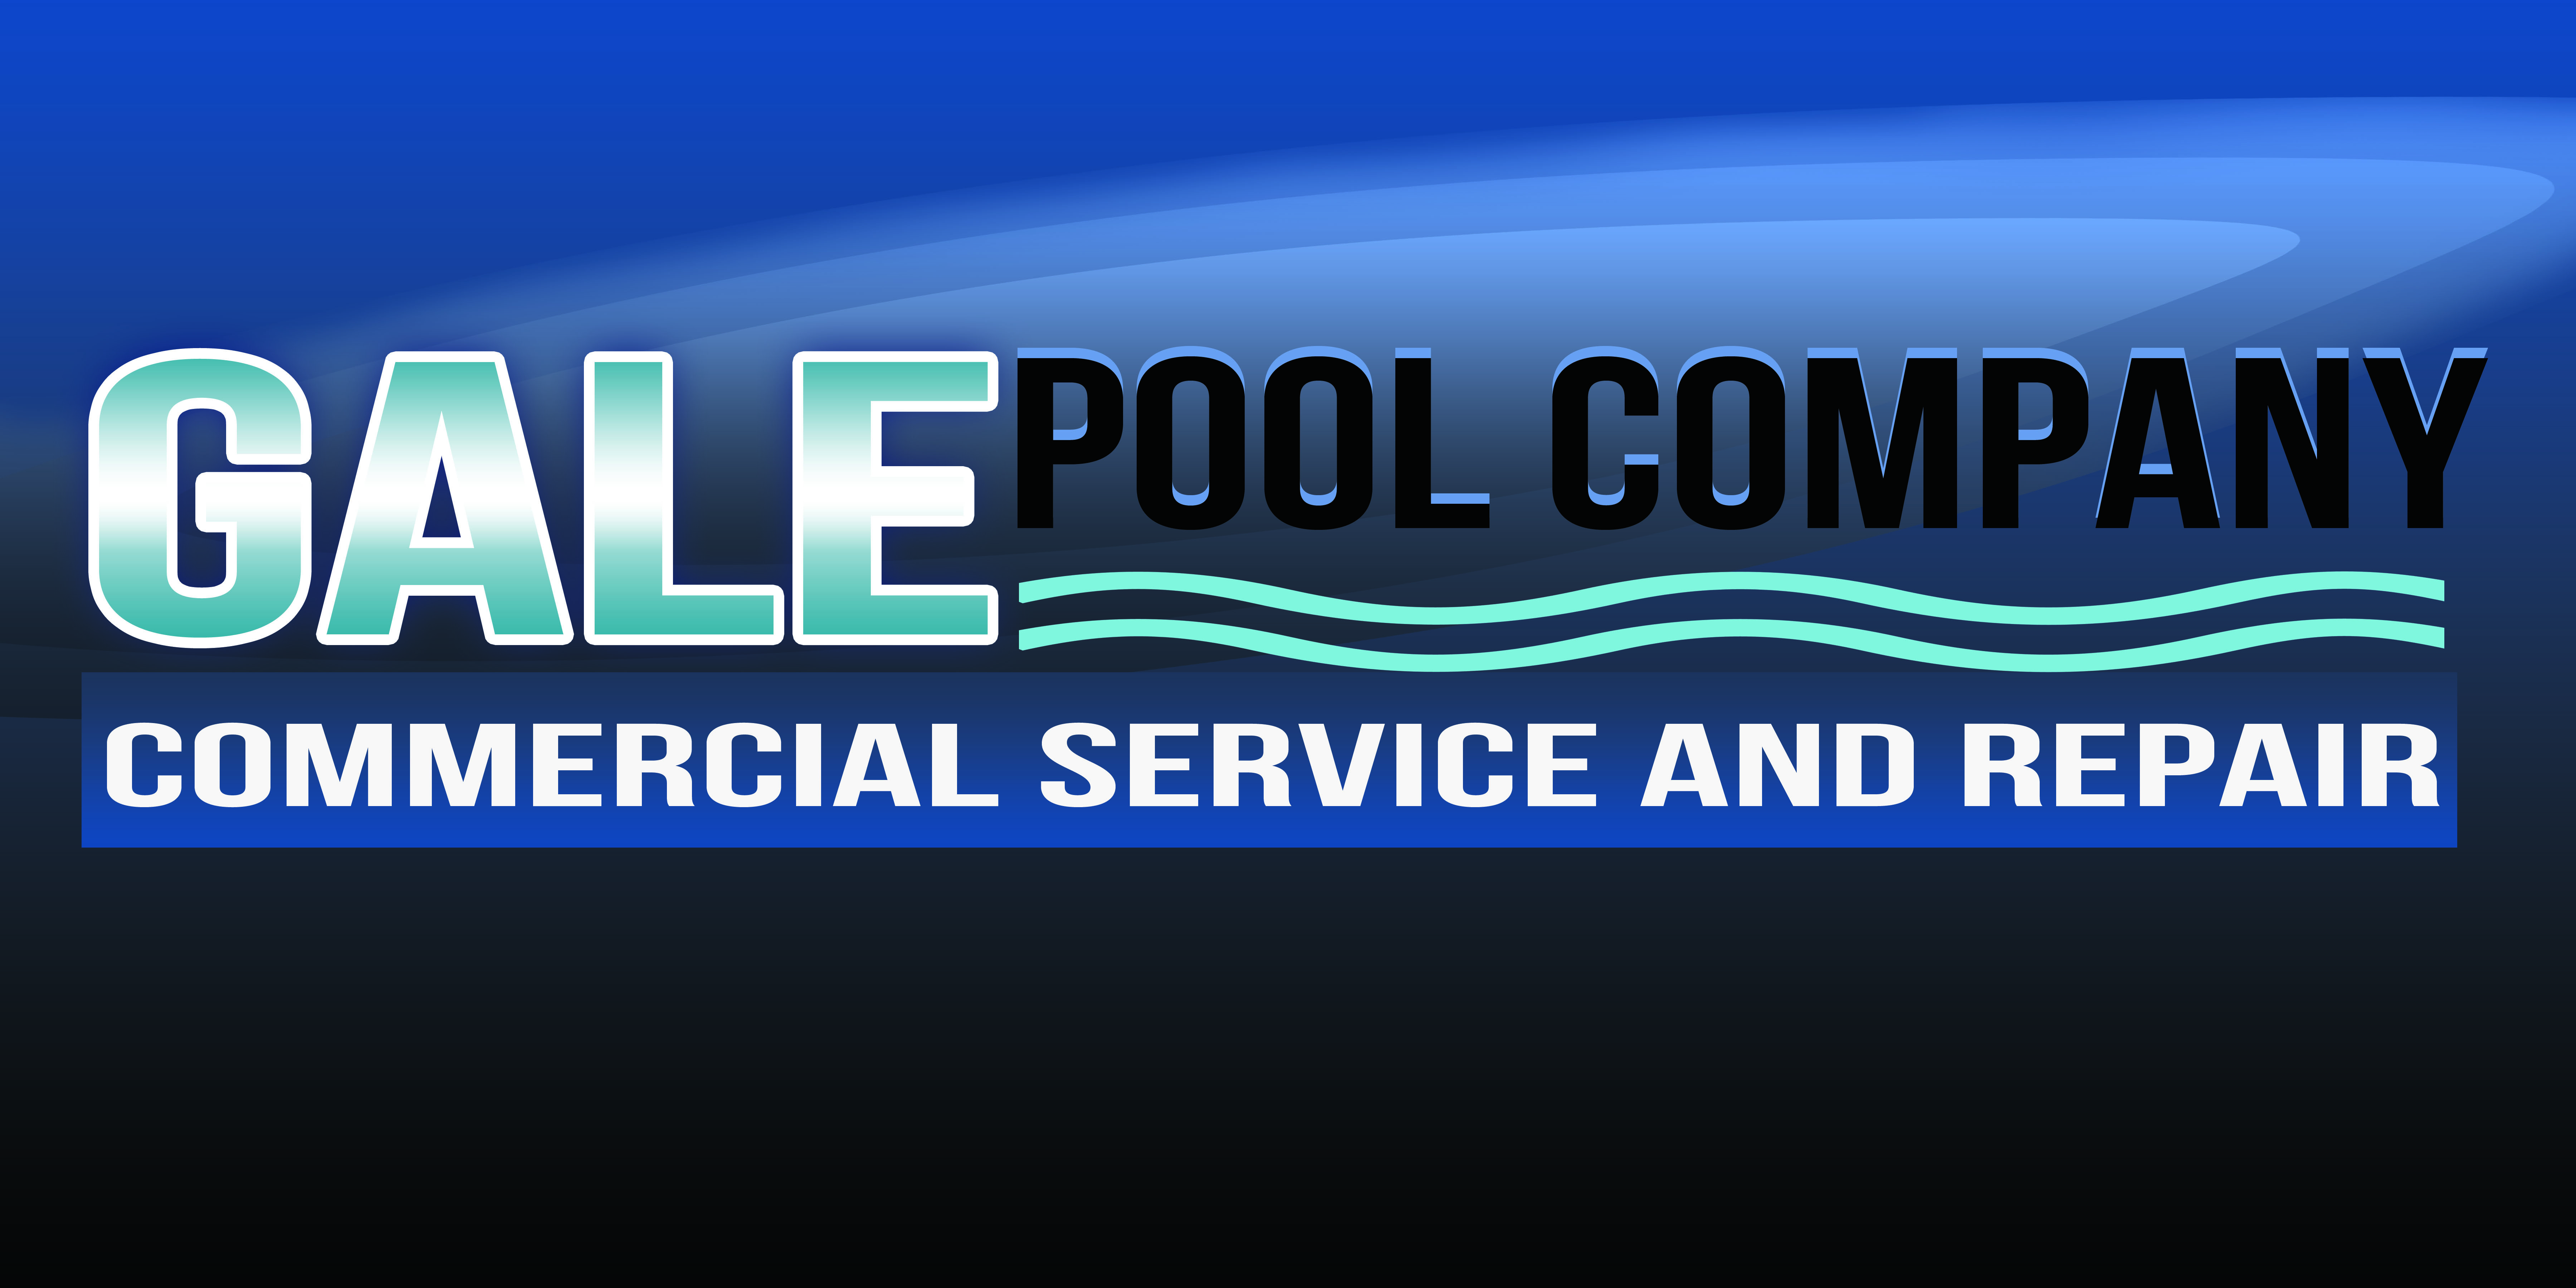 Logo Design by Alan Esclamado - Entry No. 74 in the Logo Design Contest Imaginative Logo Design for Gale Pool Company.